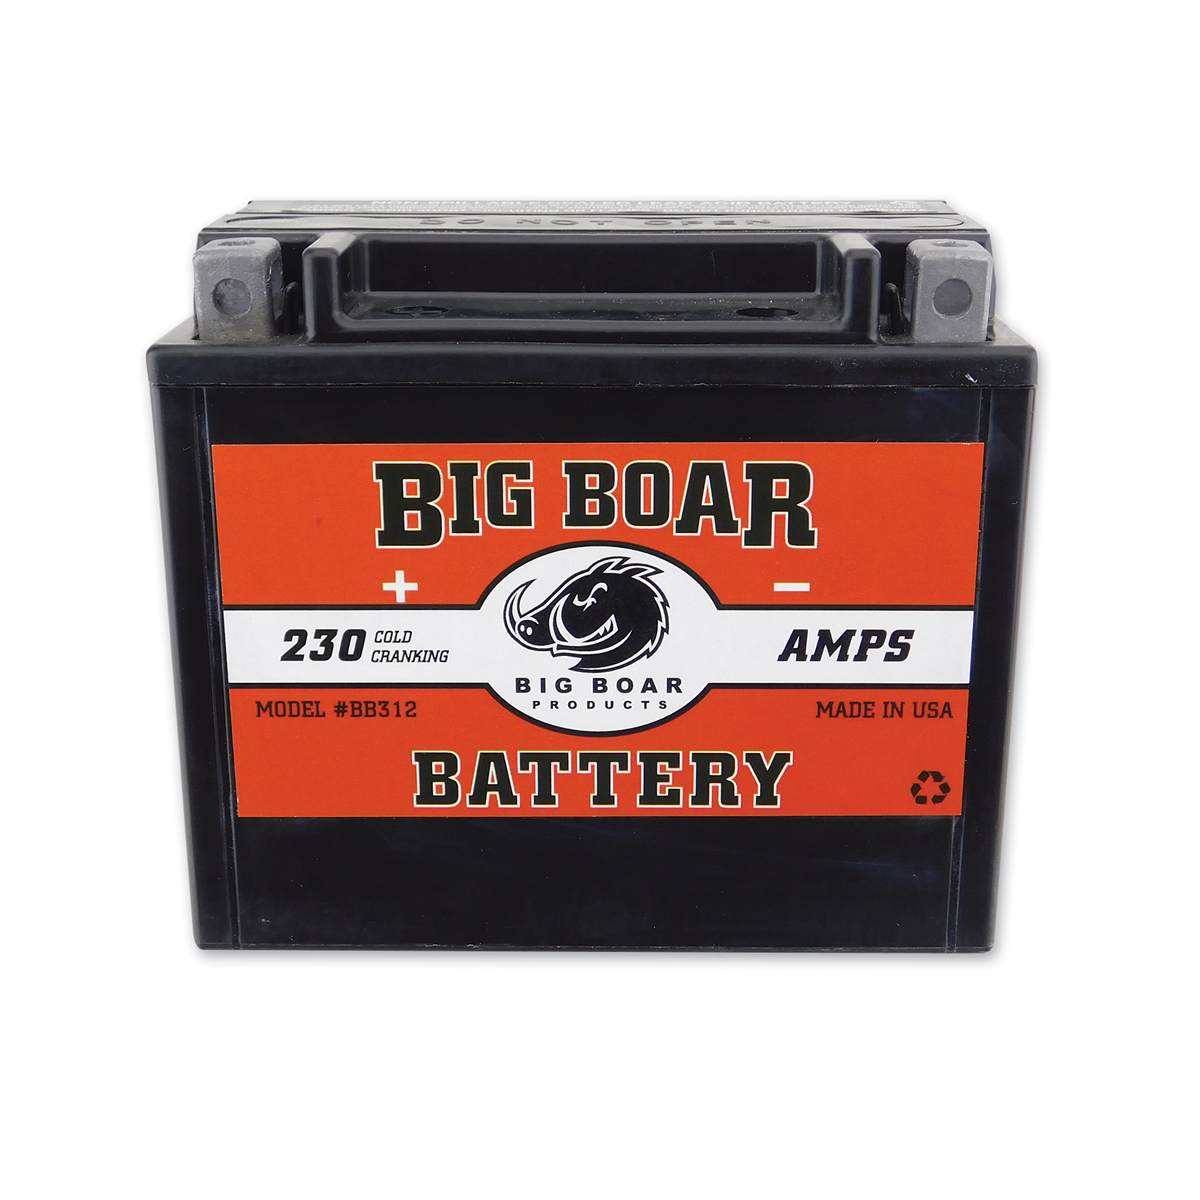 Big Boar Battery Model BB312